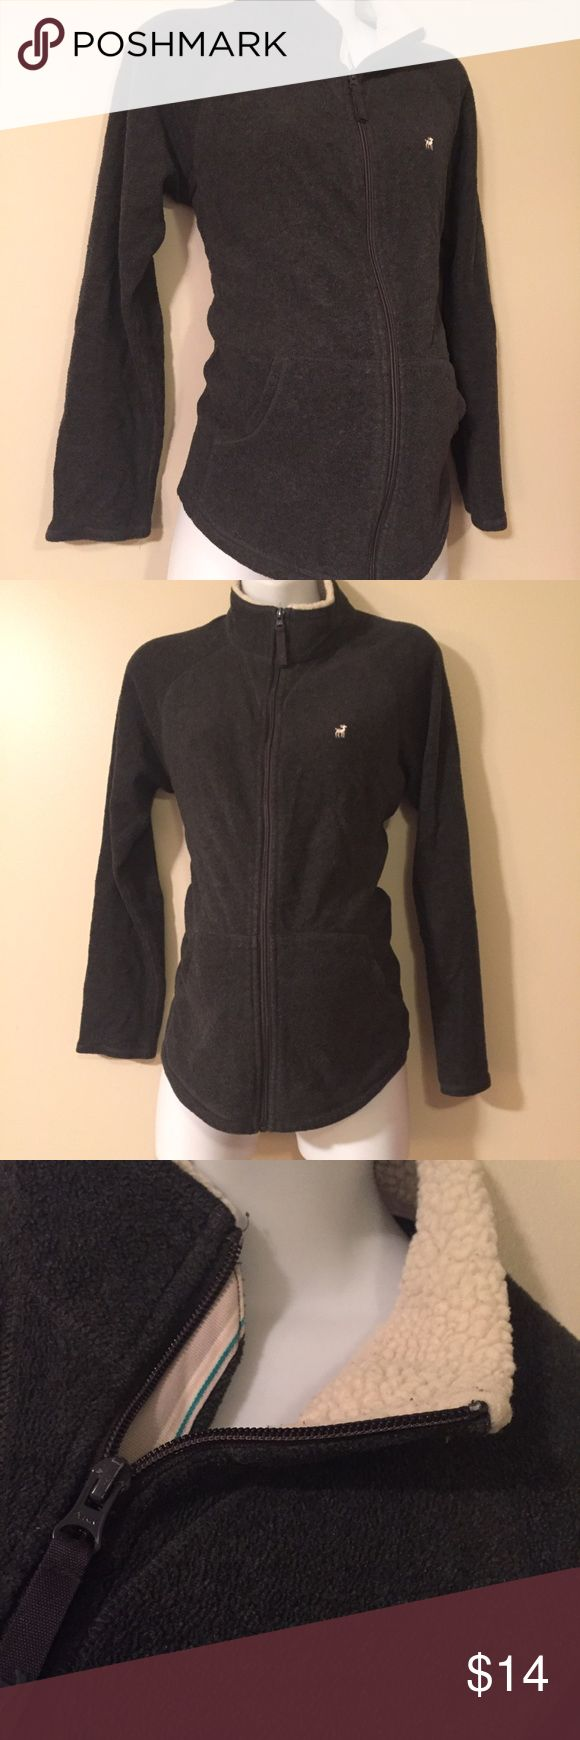 Maternity zip up sweater jacket medium Awesome condition Maternity zip up sweater jacket size medium by old navy. Old Navy Jackets & Coats